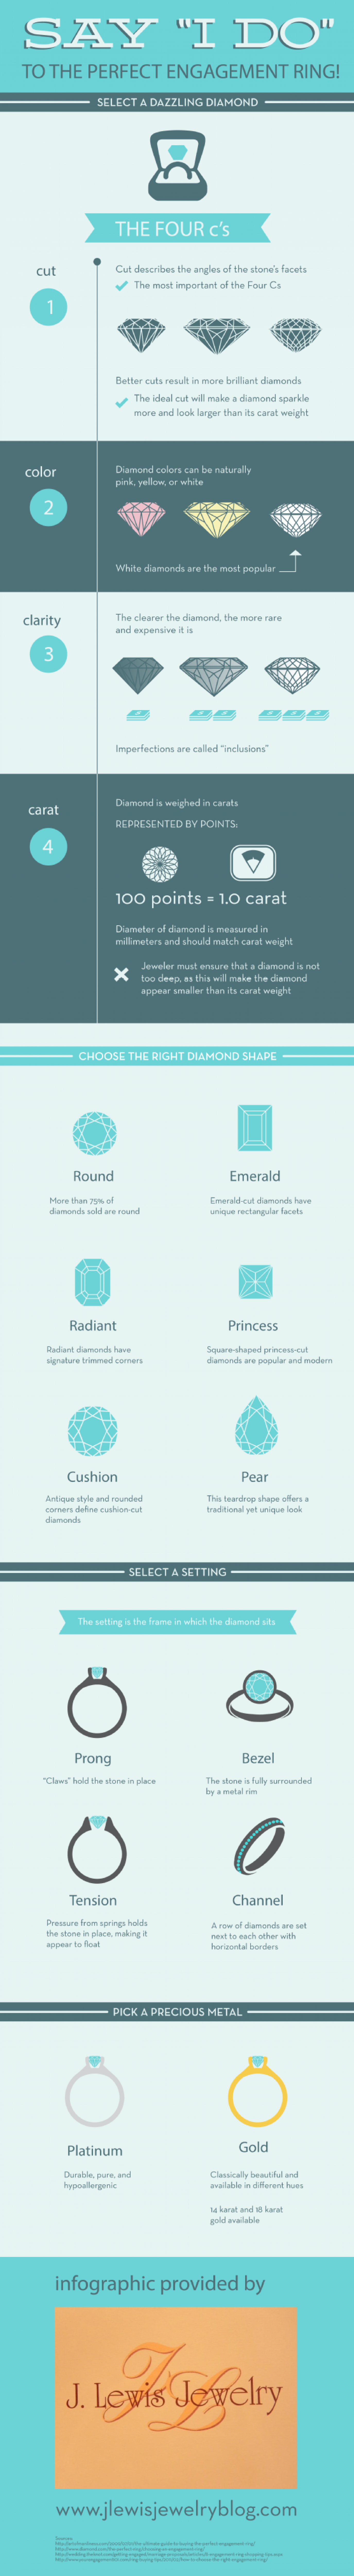 "Say ""I Do"" to the Perfect Engagement Ring! Infographic"